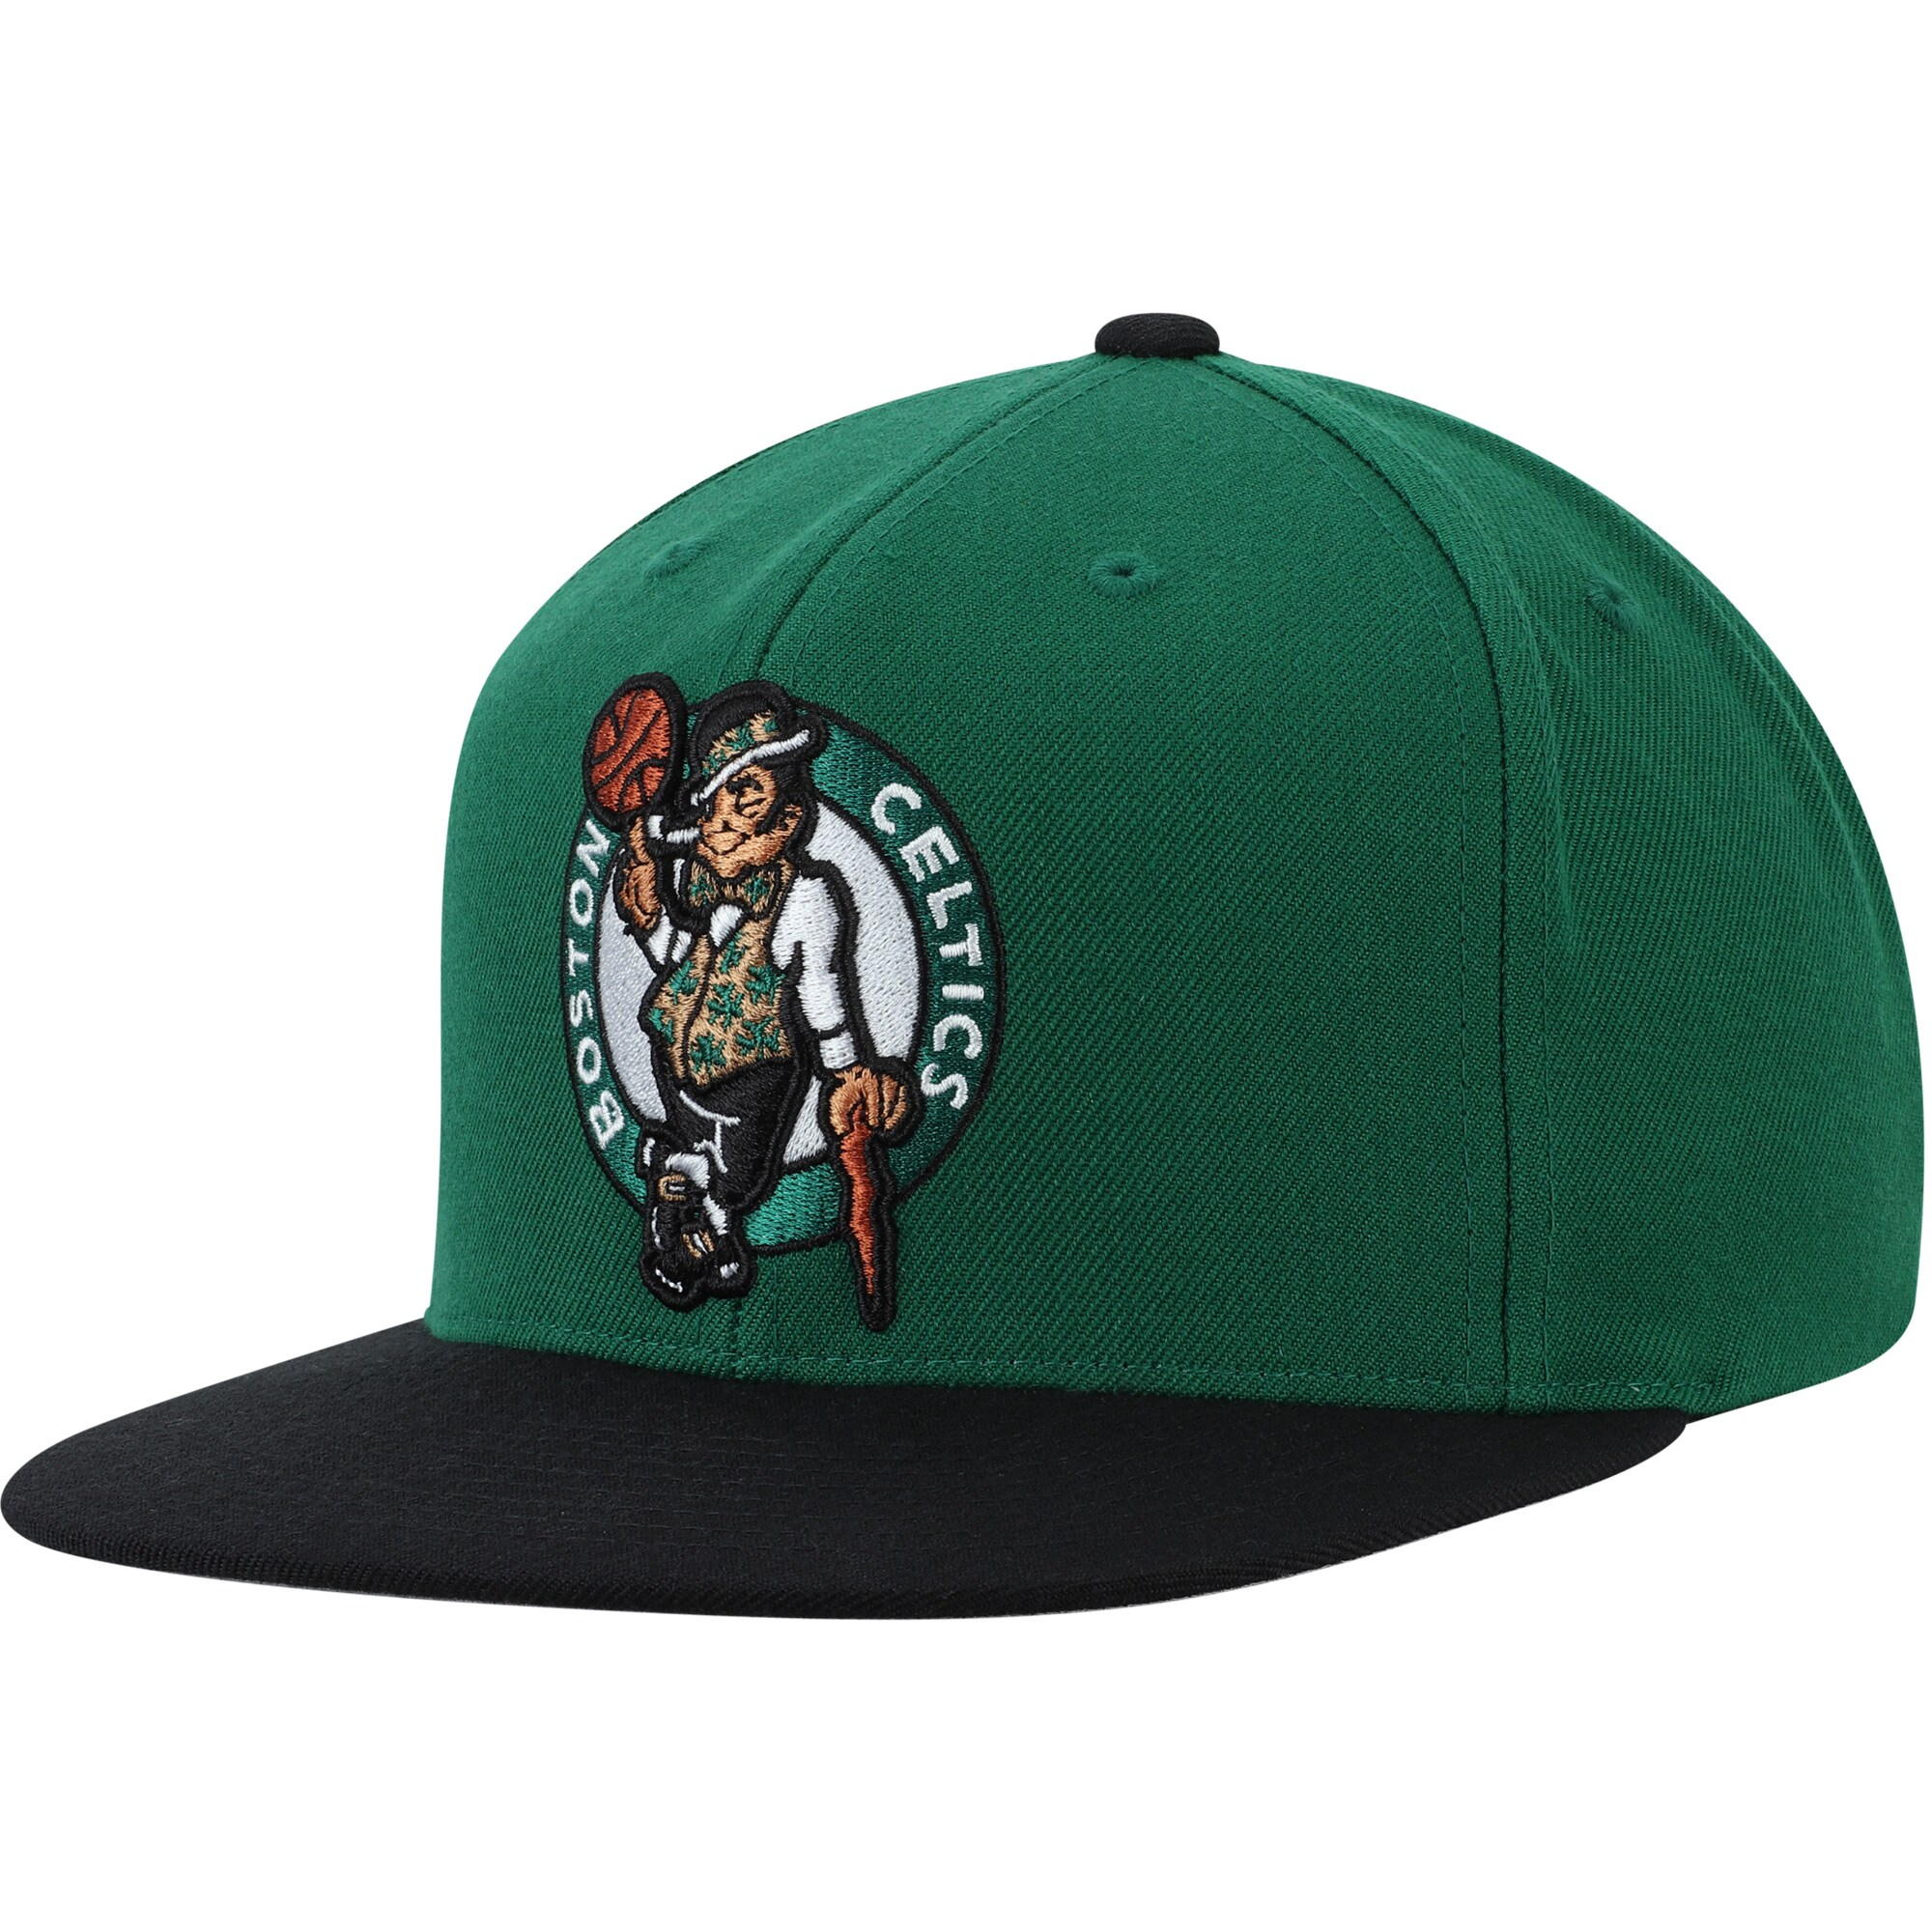 Boston Celtics Mitchell & Ness Two-Tone Wool Snapback Hat - Kelly Green/Black